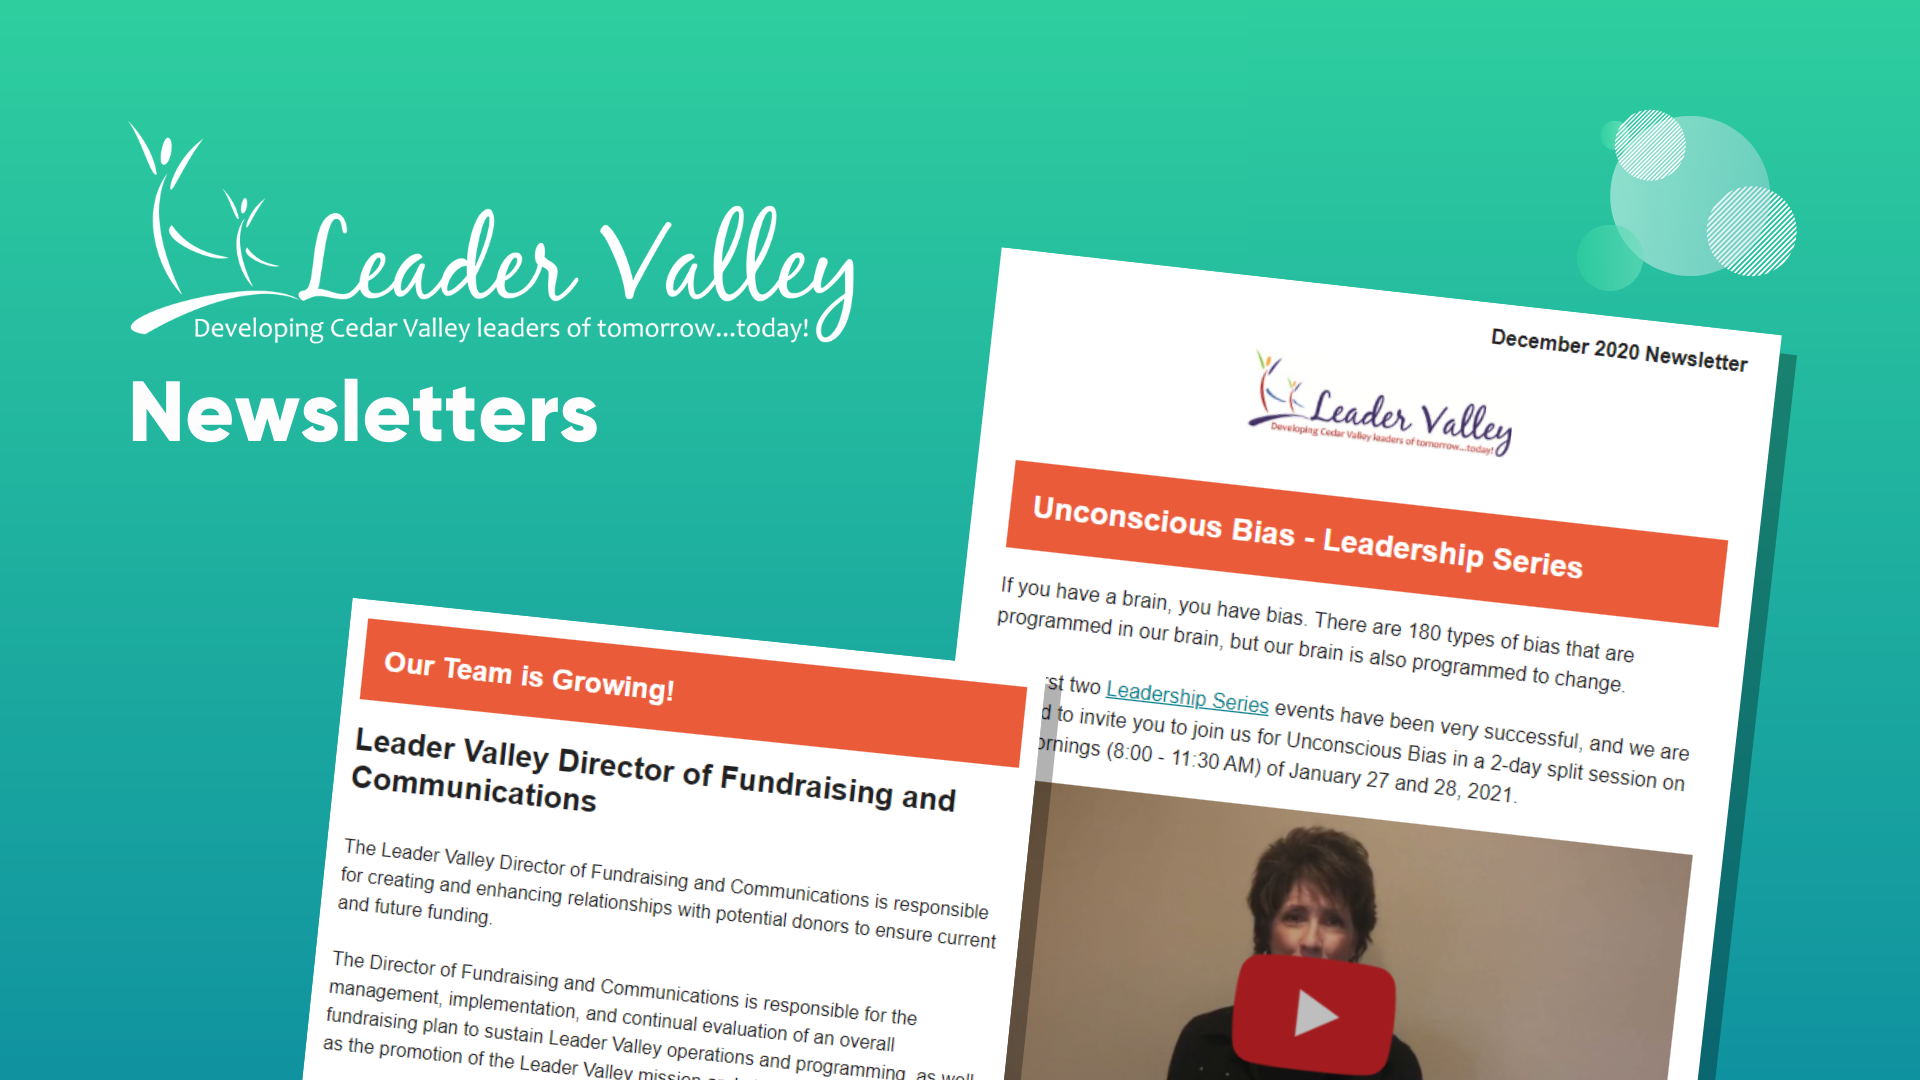 Leader Valley email newsletter